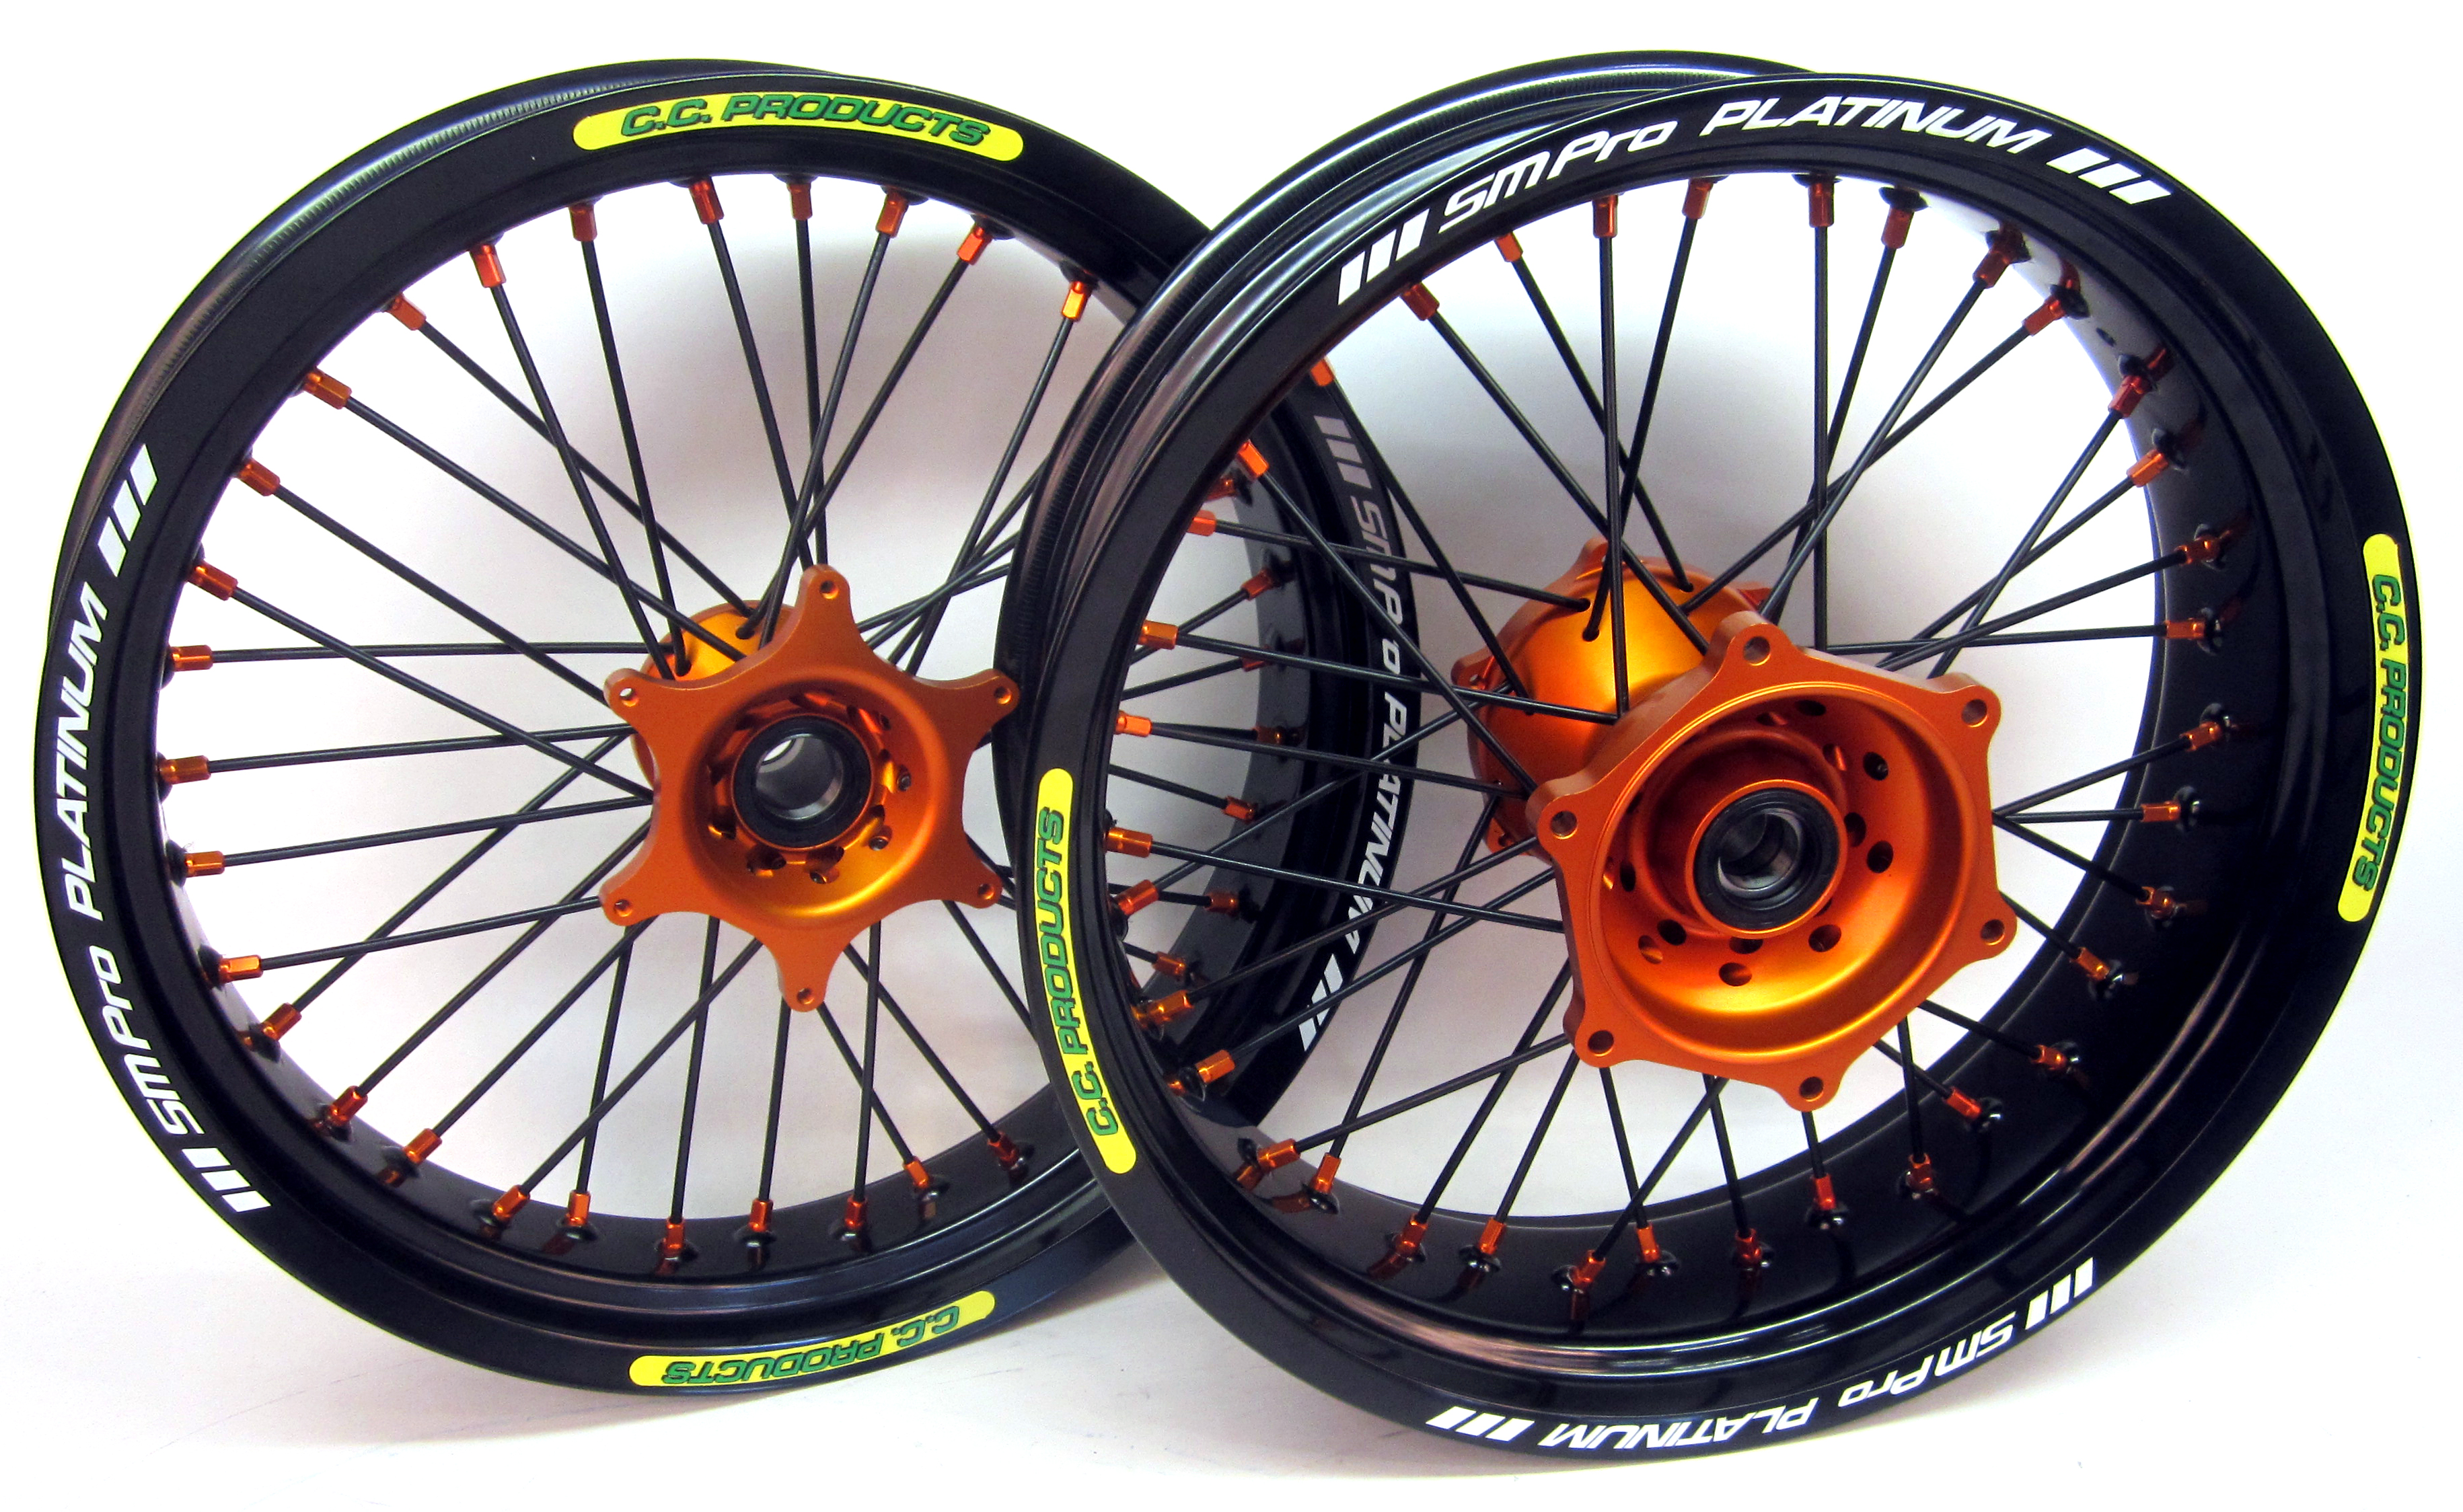 CC KTM Wheel Set 17 inch - orange hub - black spokes - orange nipples - black rim